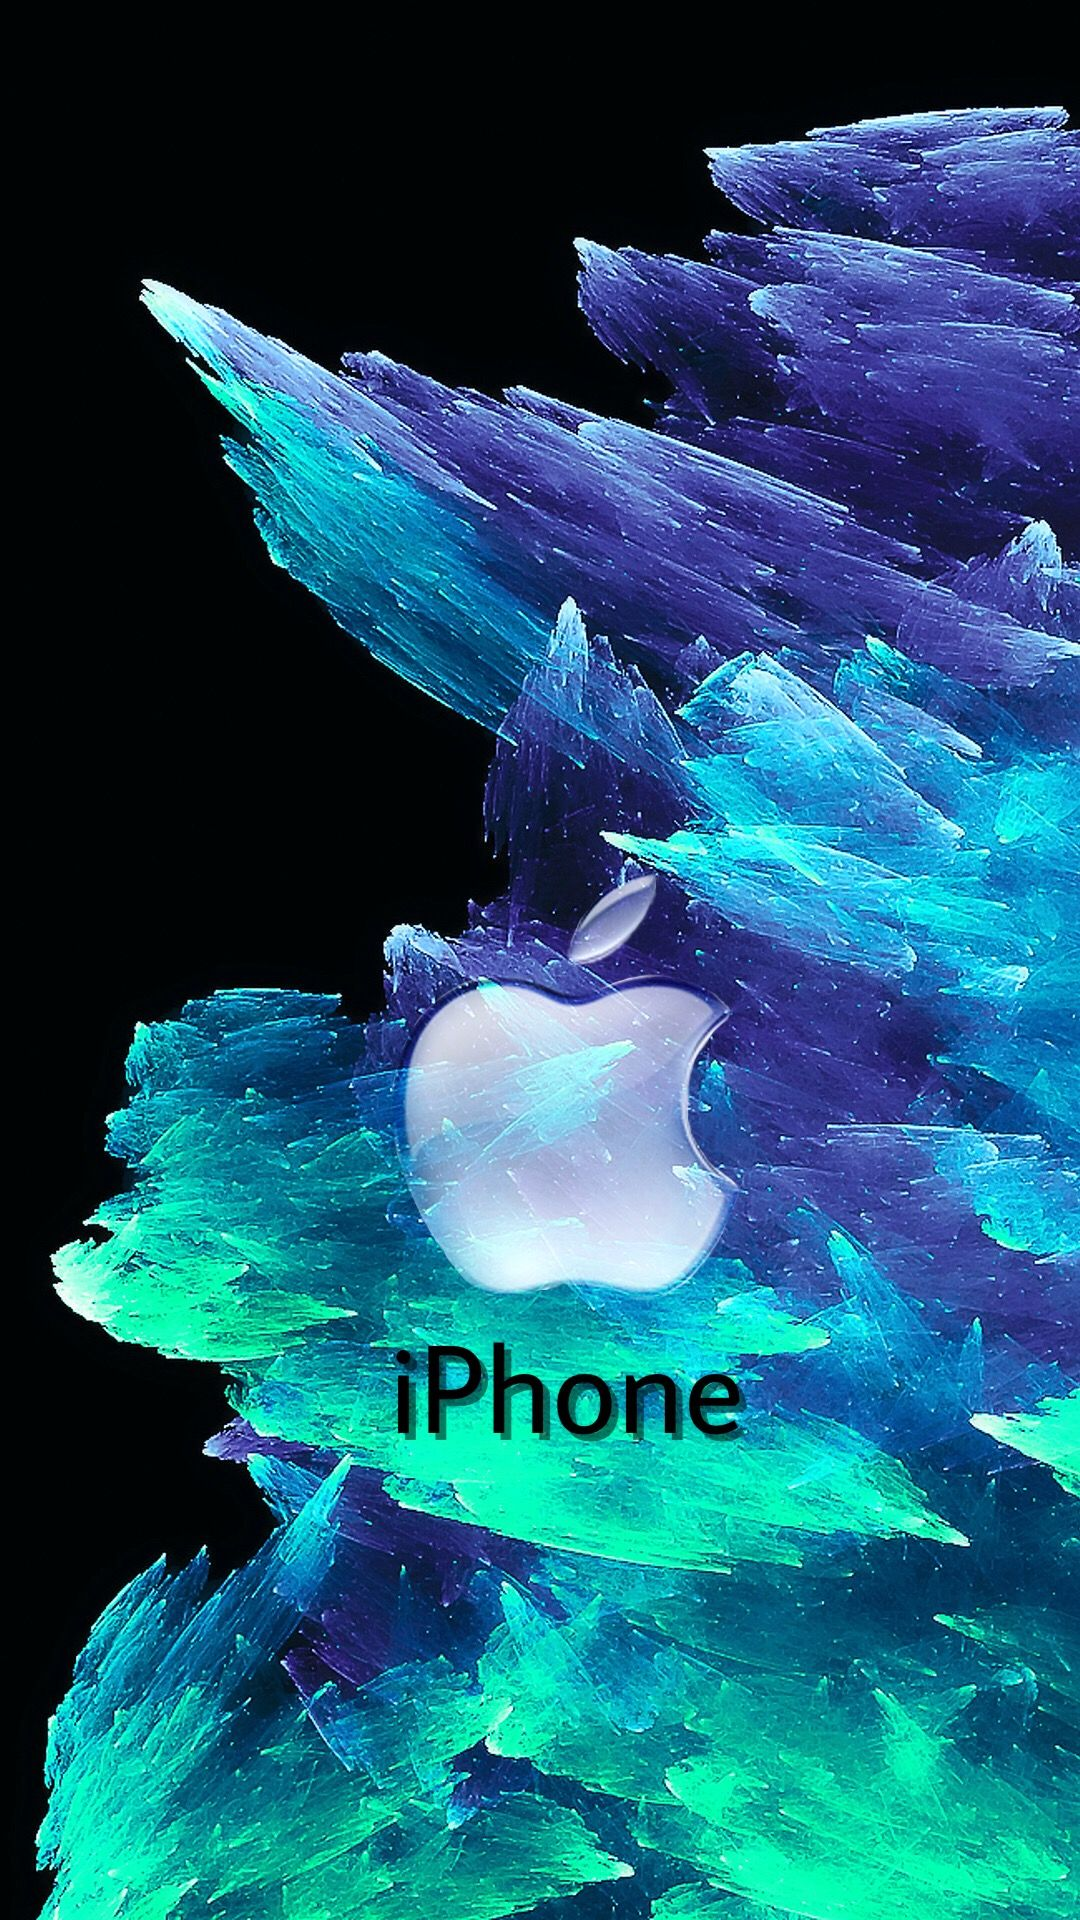 Pin By Abrahim On Calligraphy Apple Logo Wallpaper Iphone Apple Wallpaper Apple Iphone Wallpaper Hd